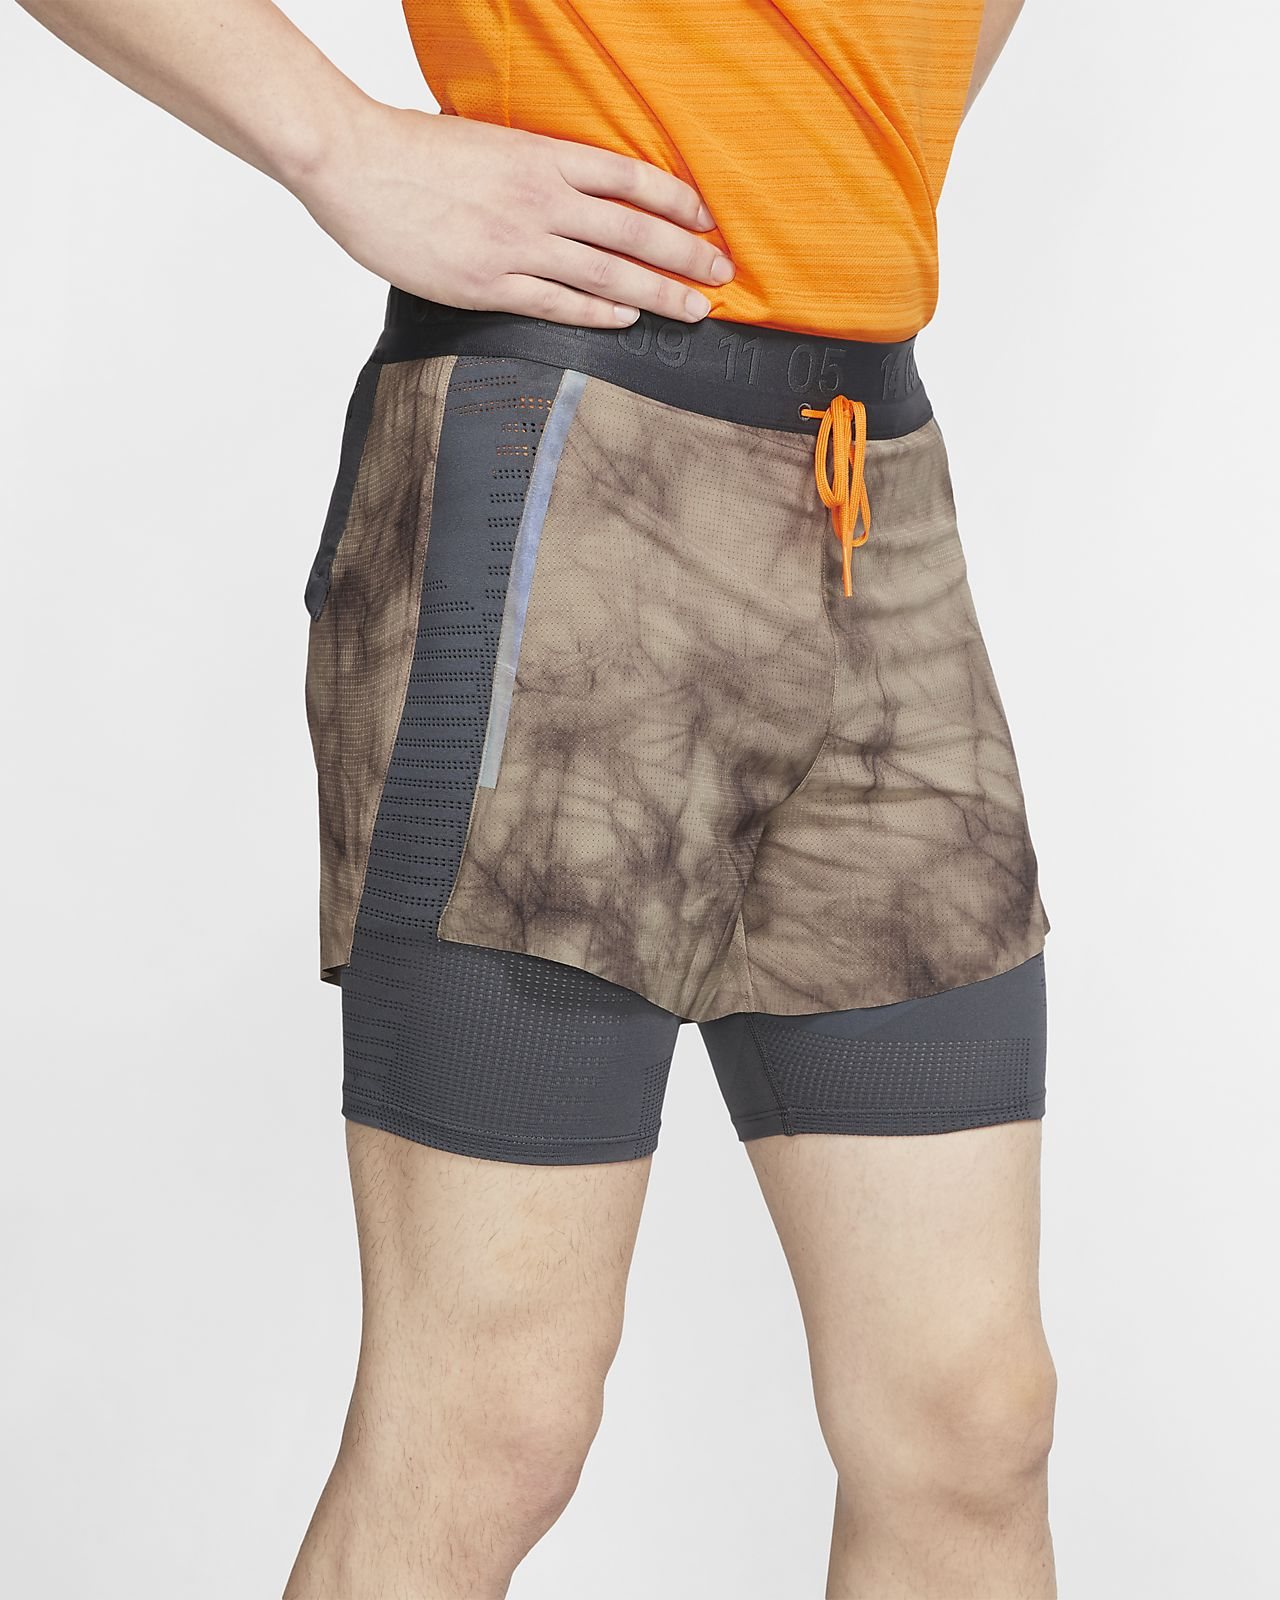 Shorts de running 2 en 1 para hombre Nike Tech Pack